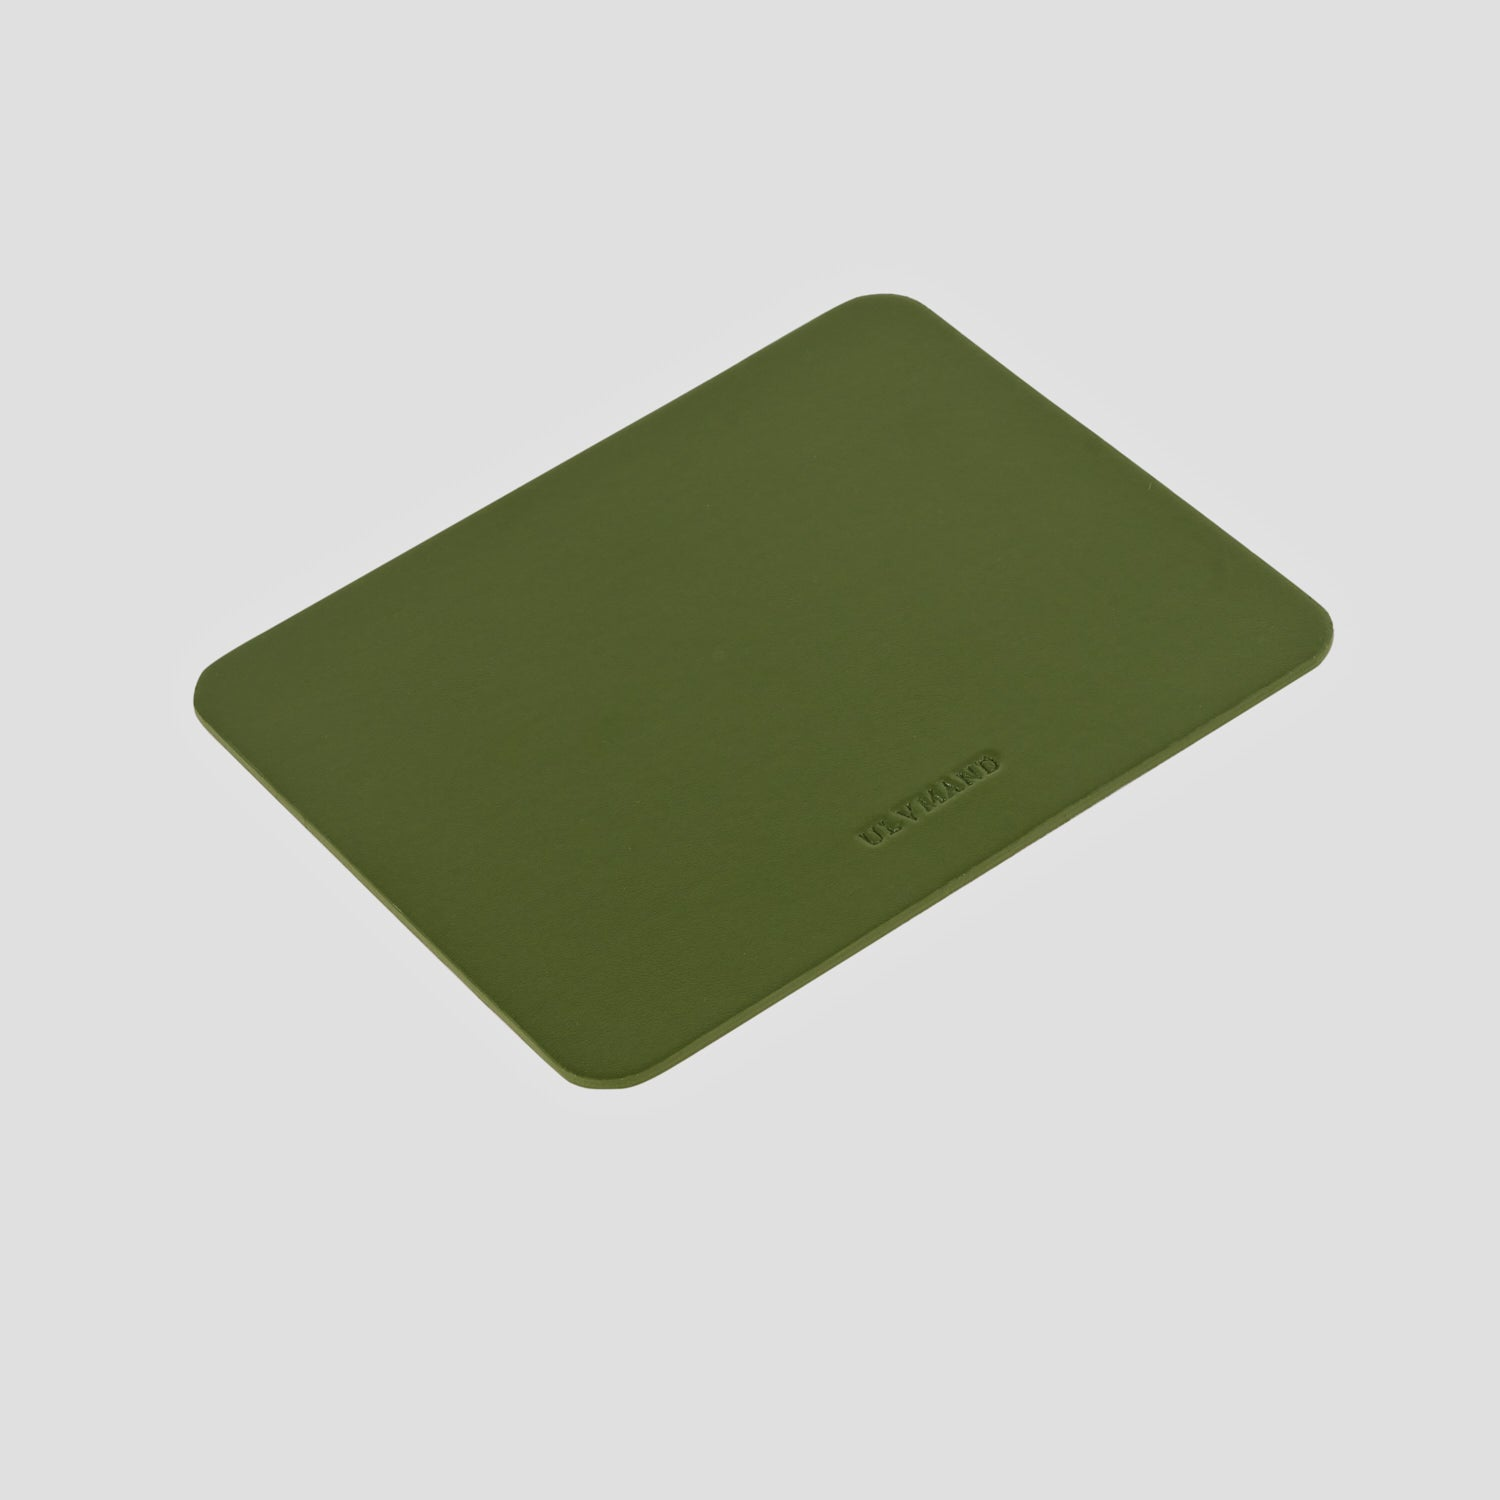 Petrides Vegan Leather Mousepad - Cactus Green